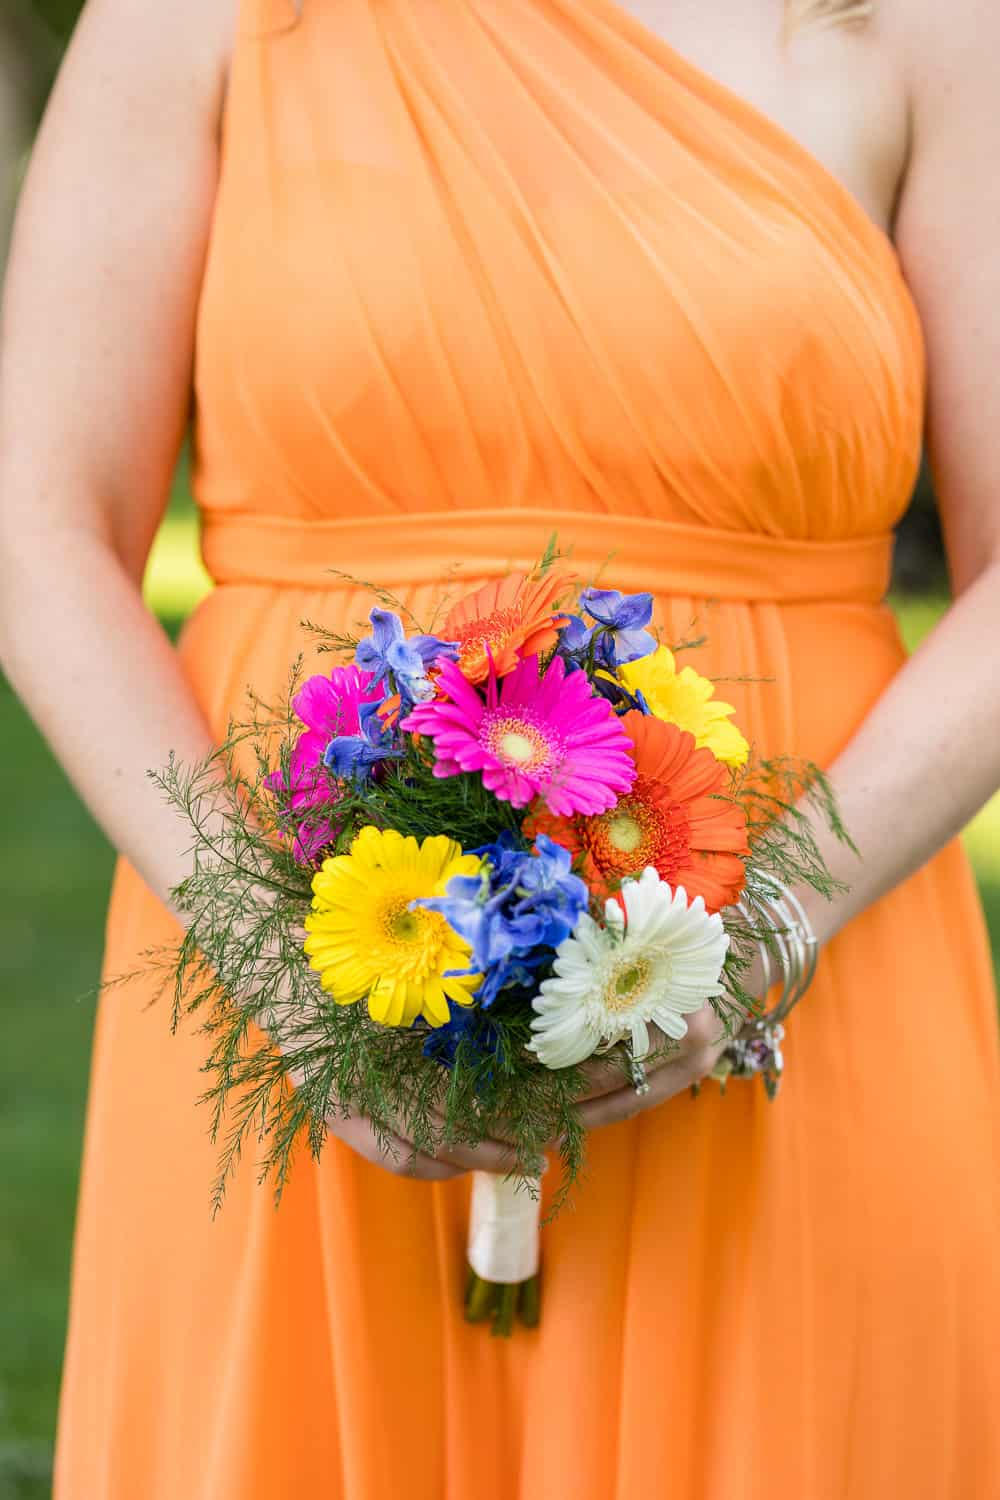 Summer flowers and bright orange dresses for a wedding.